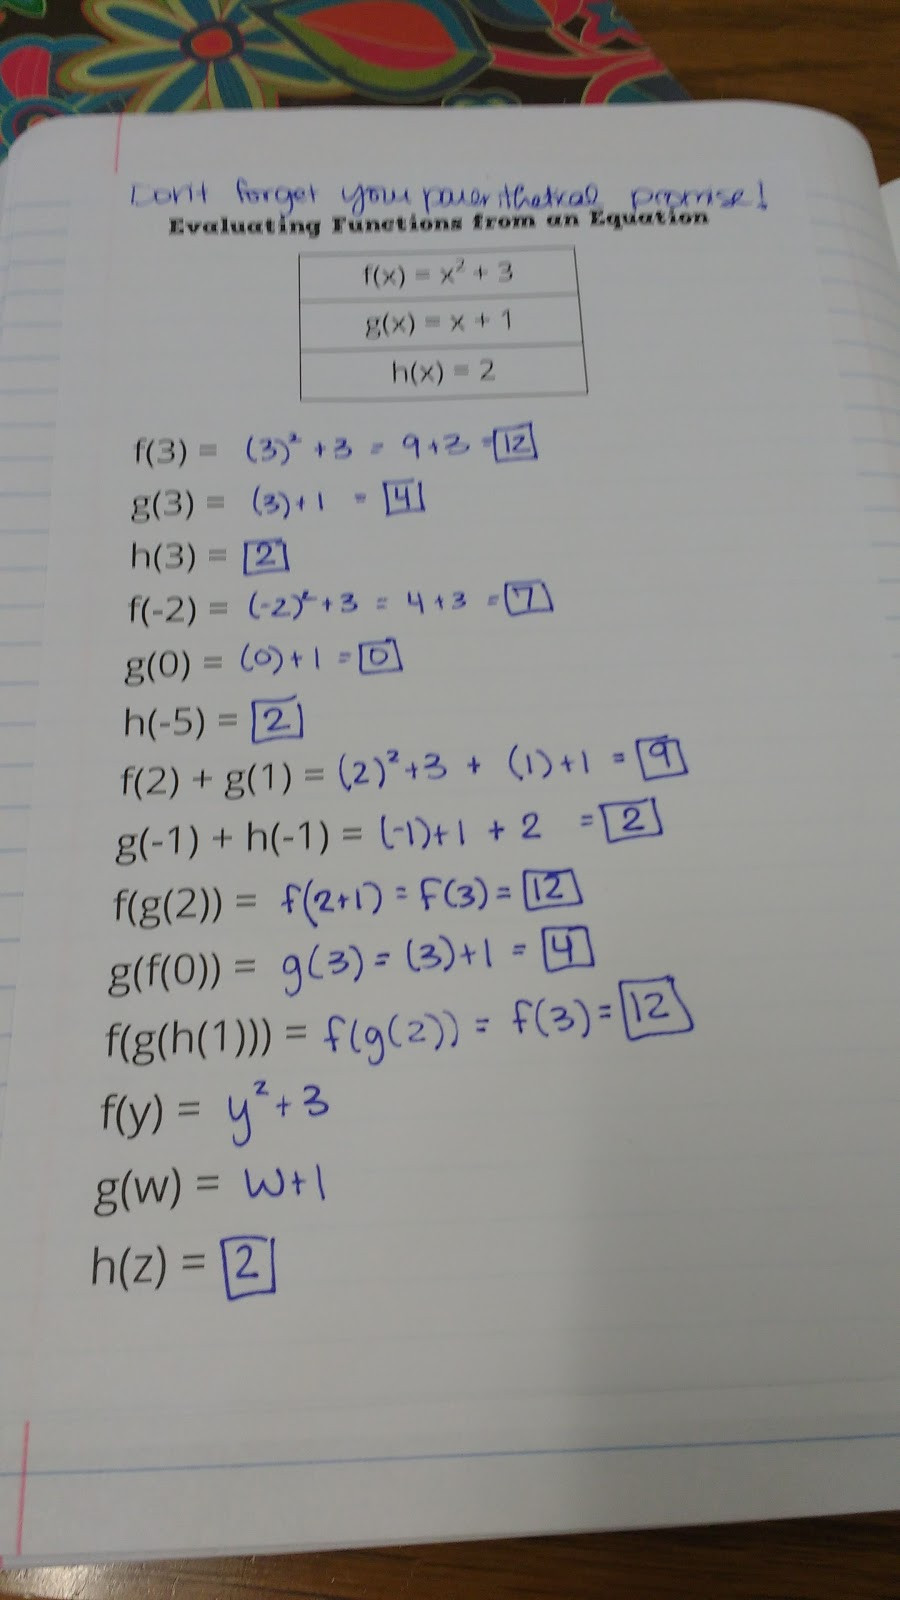 Function Notation Worksheet Answers Math = Love Algebra 1 Unit 3 Relations and Functions